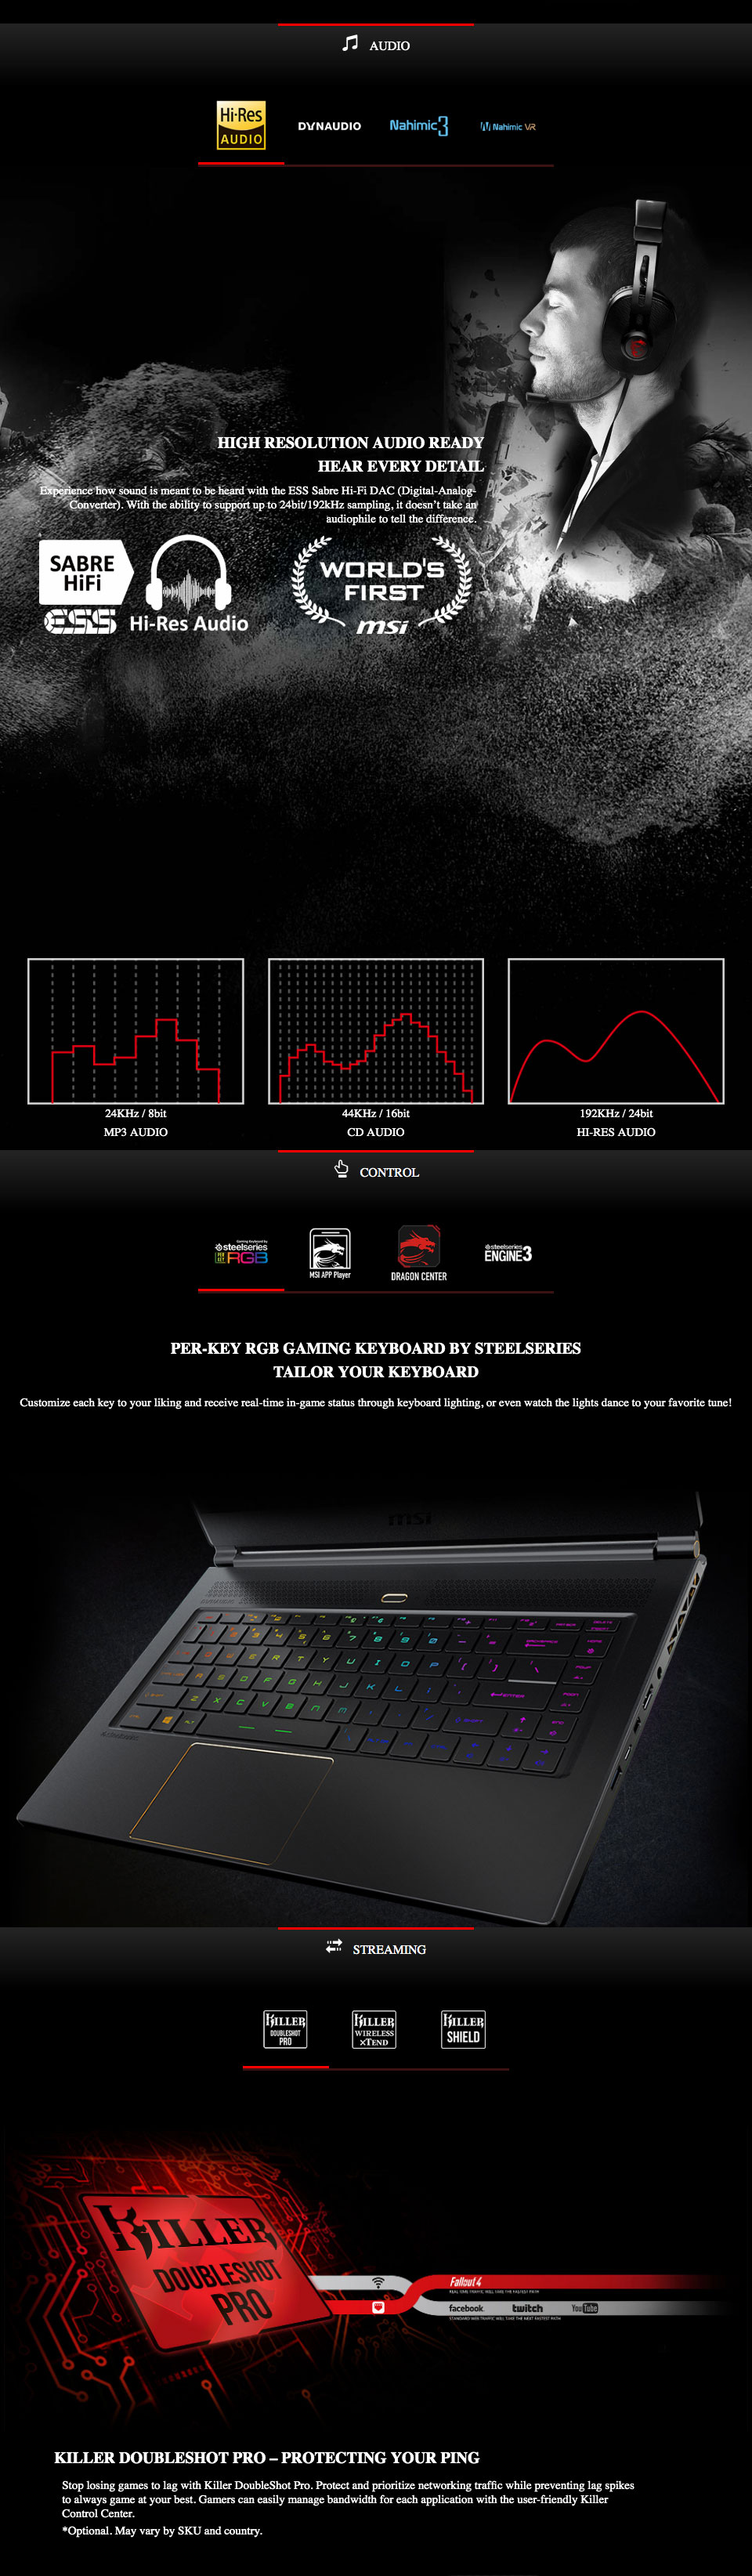 MSI GS65 Stealth Core i7 RTX 2080 15 6in 144Hz Notebook